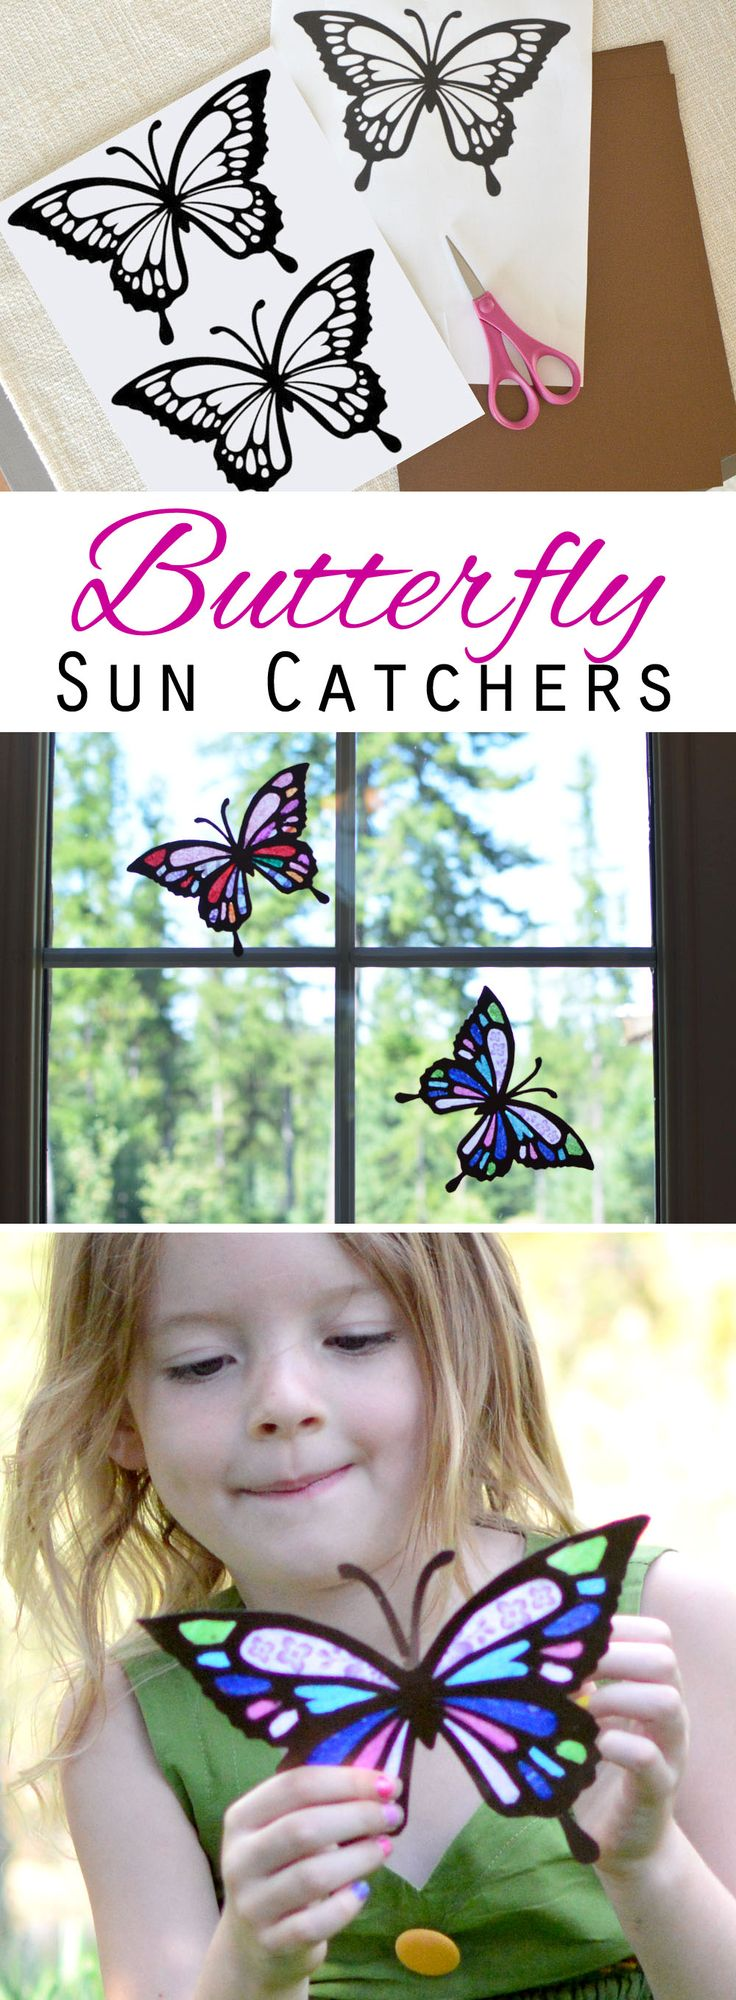 How to make butterfly sun catchers, a fun afternoon activity for kids!